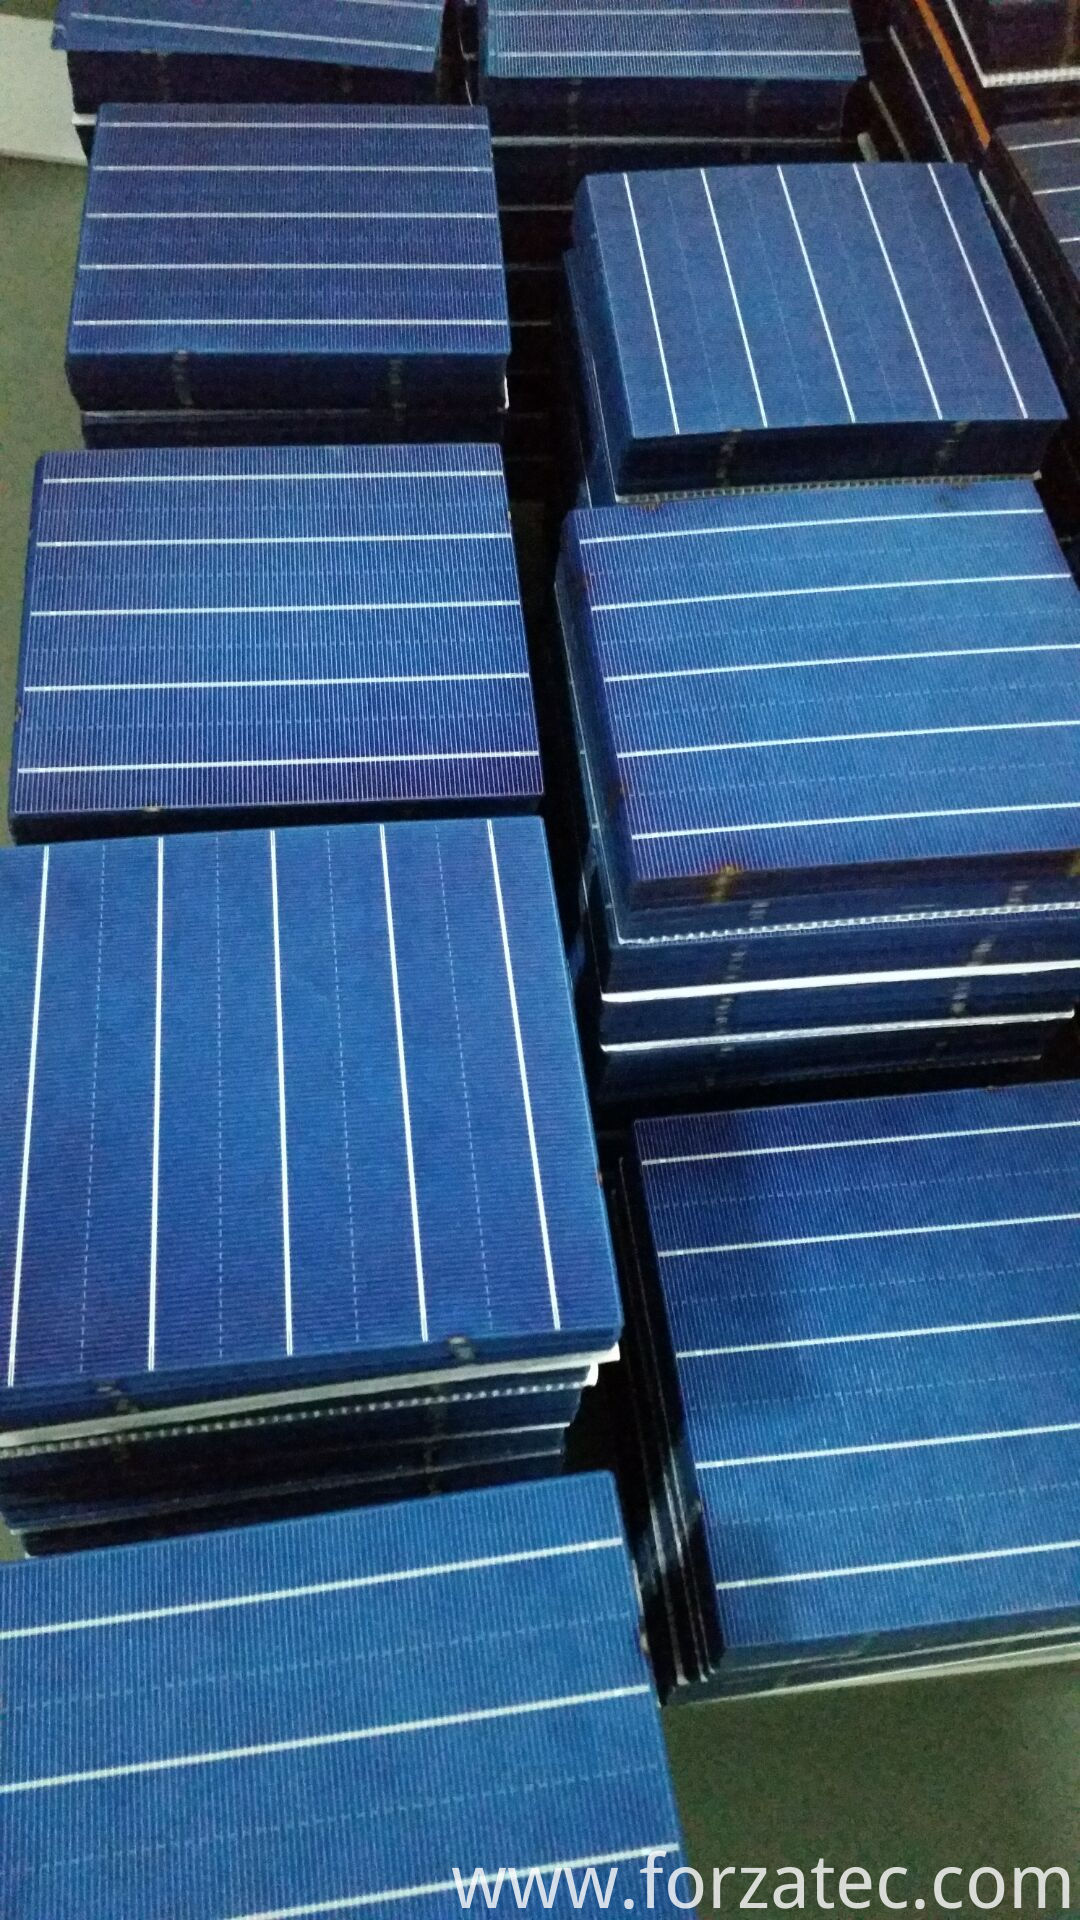 solar cell of 5 busbar